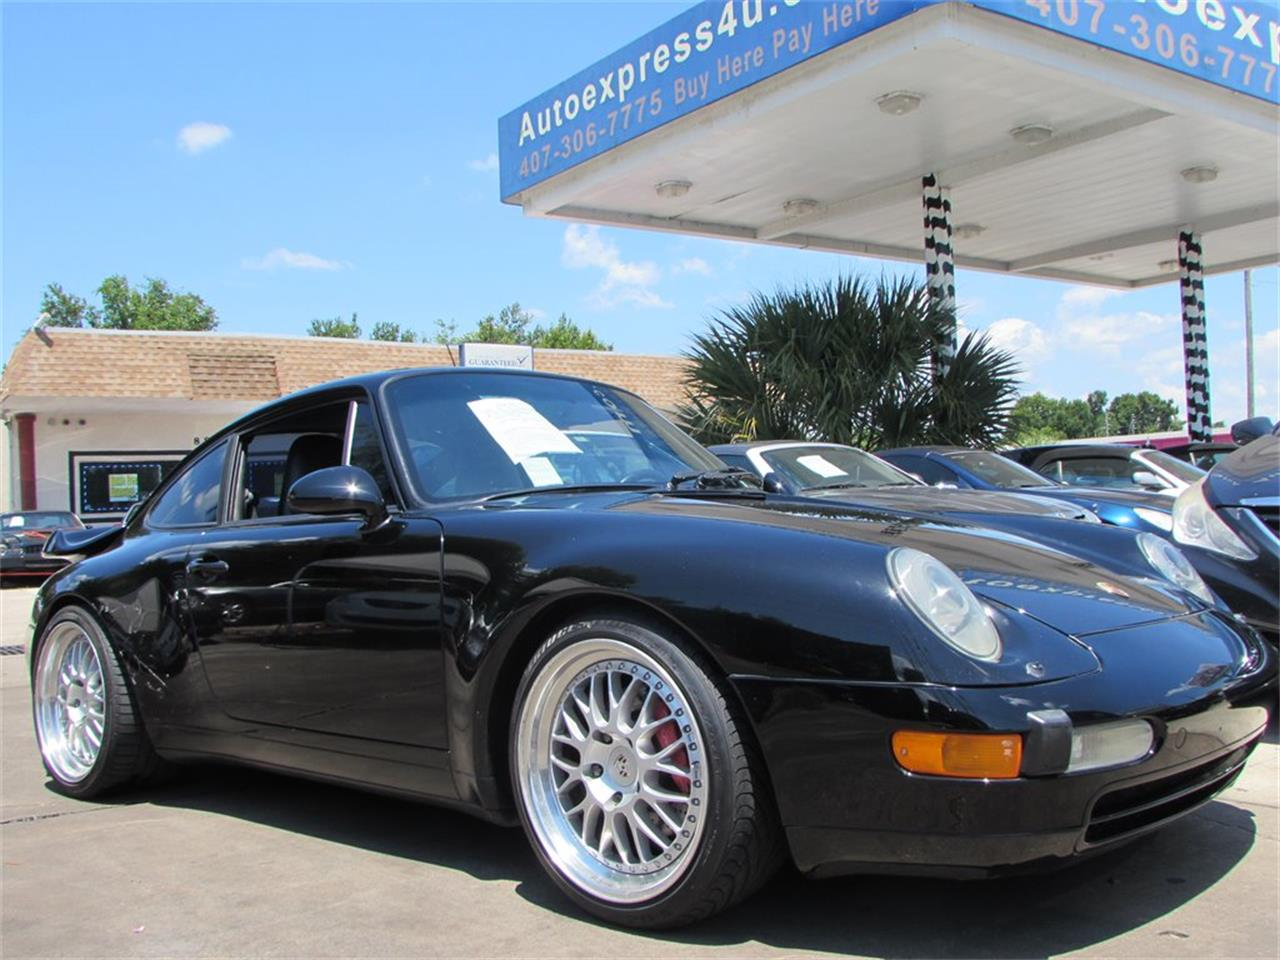 Large Picture of '96 Porsche 911 Carrera located in Florida Offered by Auto Express - Q47E